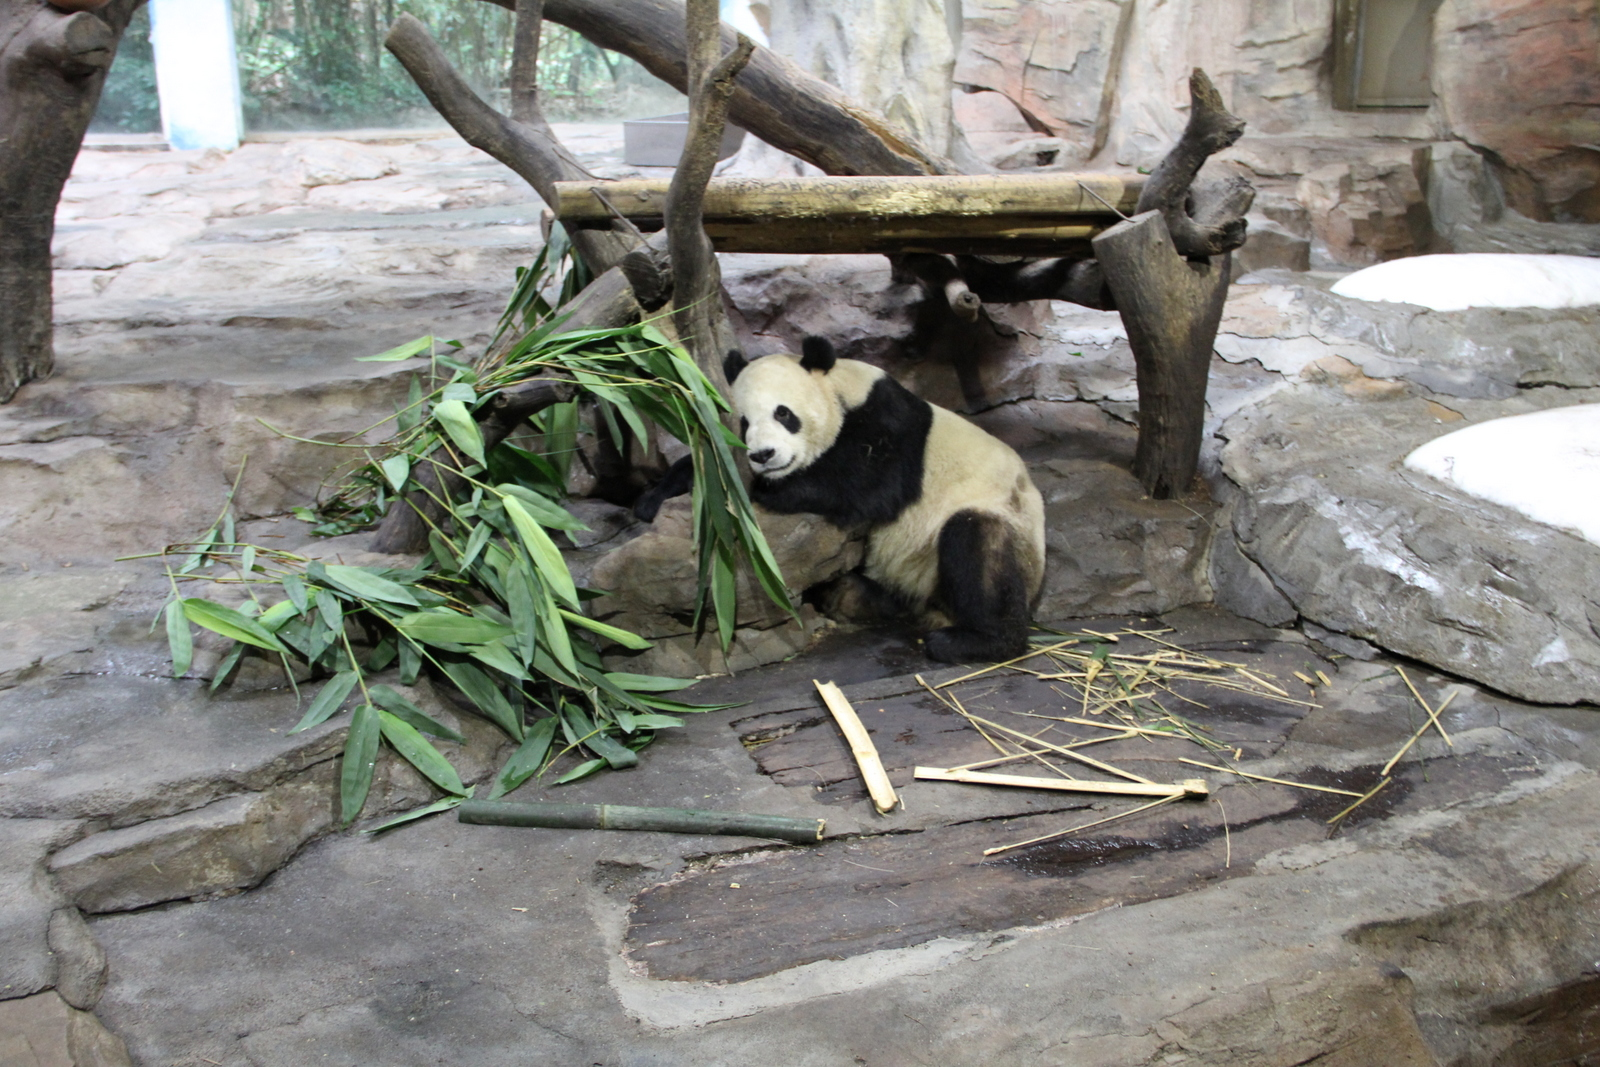 Okay just one more panda picture!